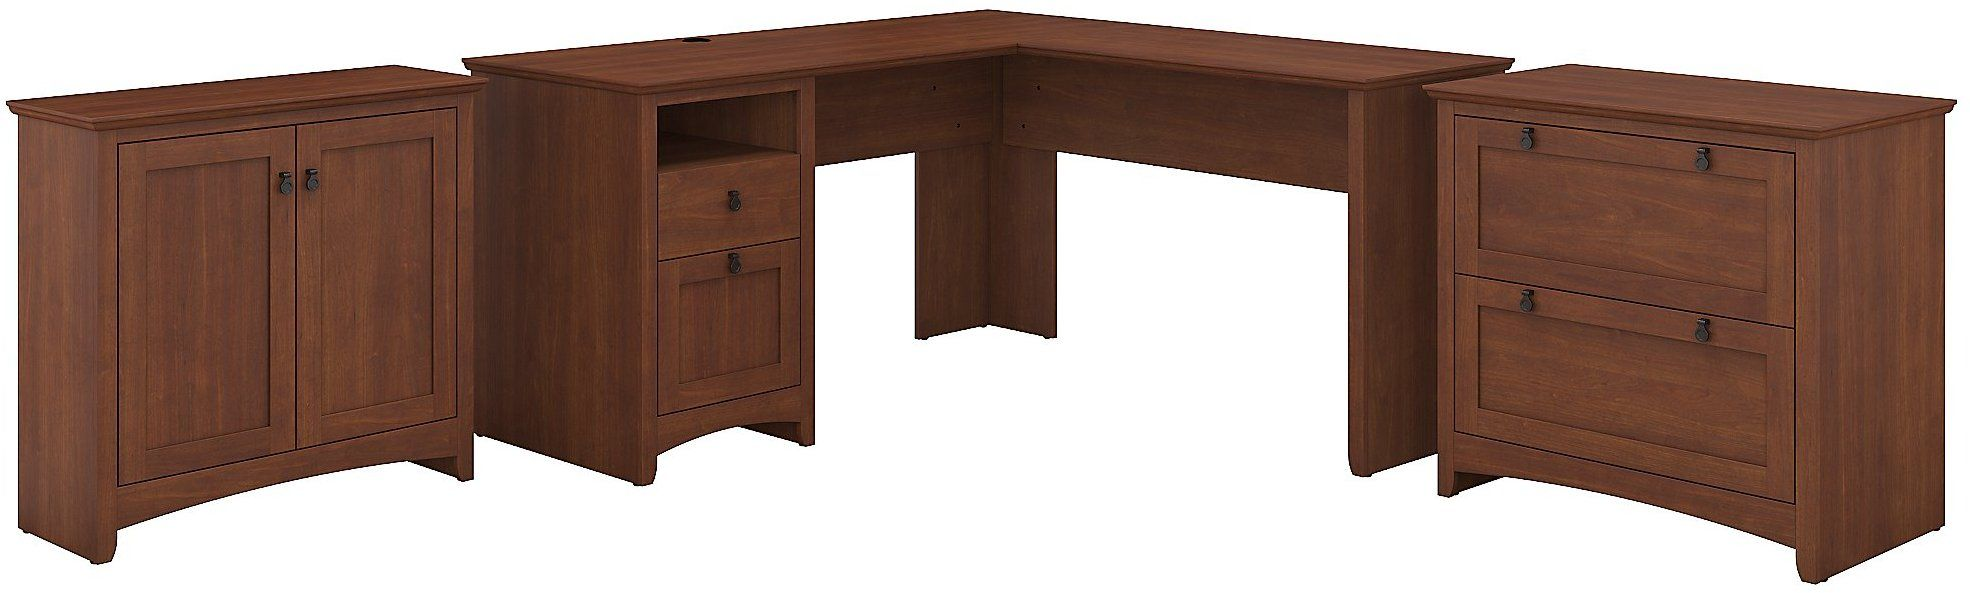 Light Cherry L Shaped Desk With Lateral File Cabinet And Storage